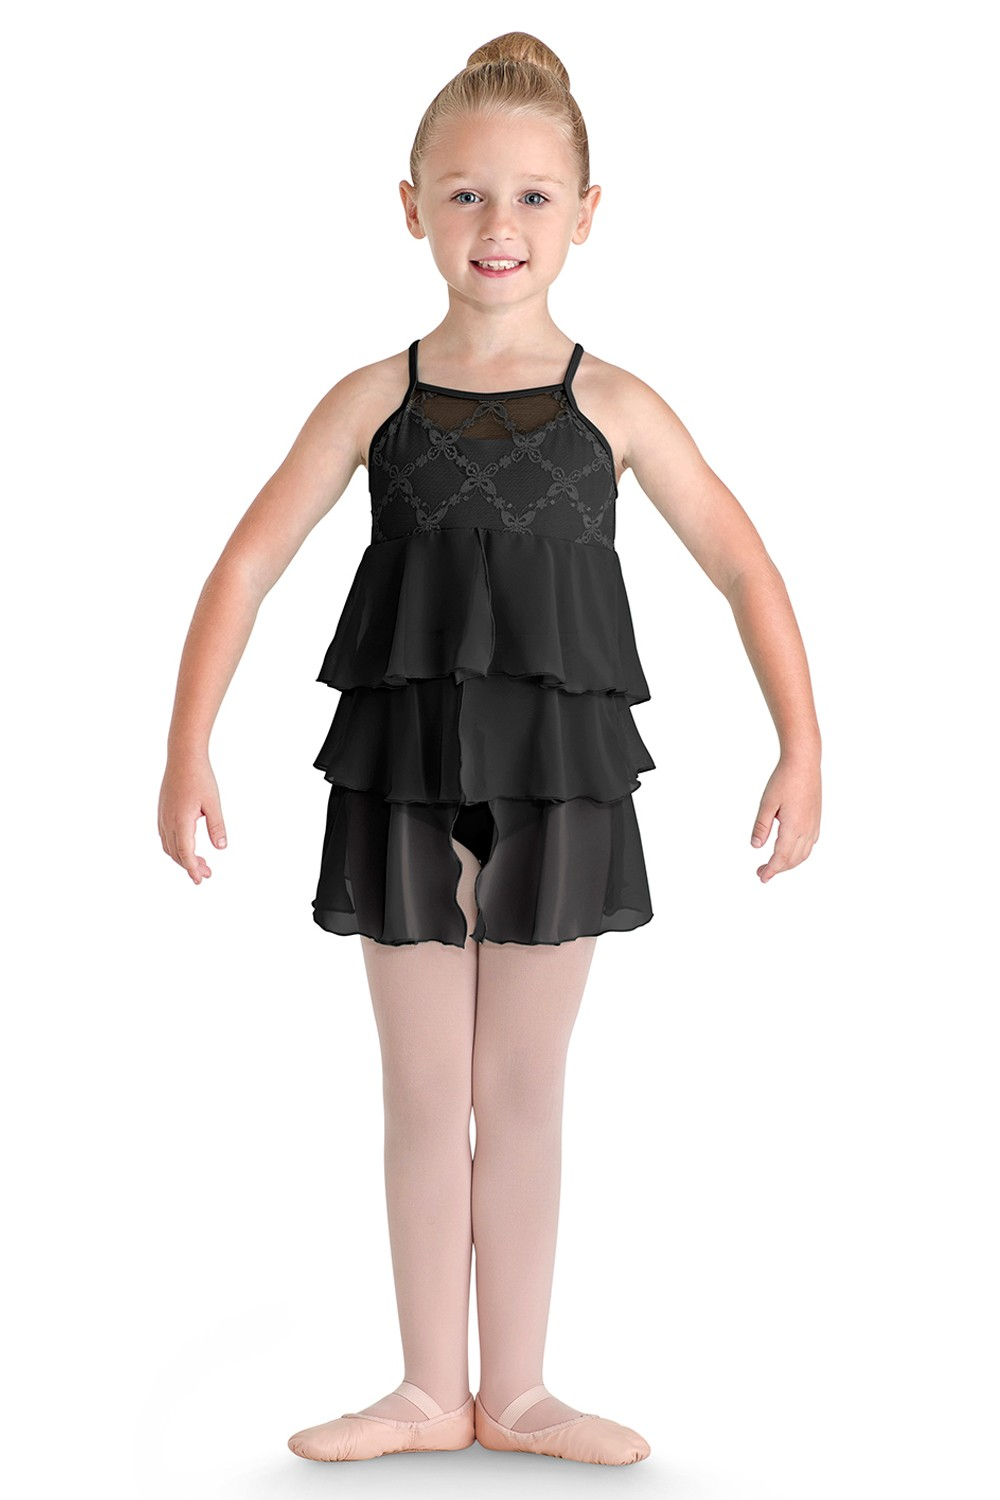 Lilach Children's Dance Leotards